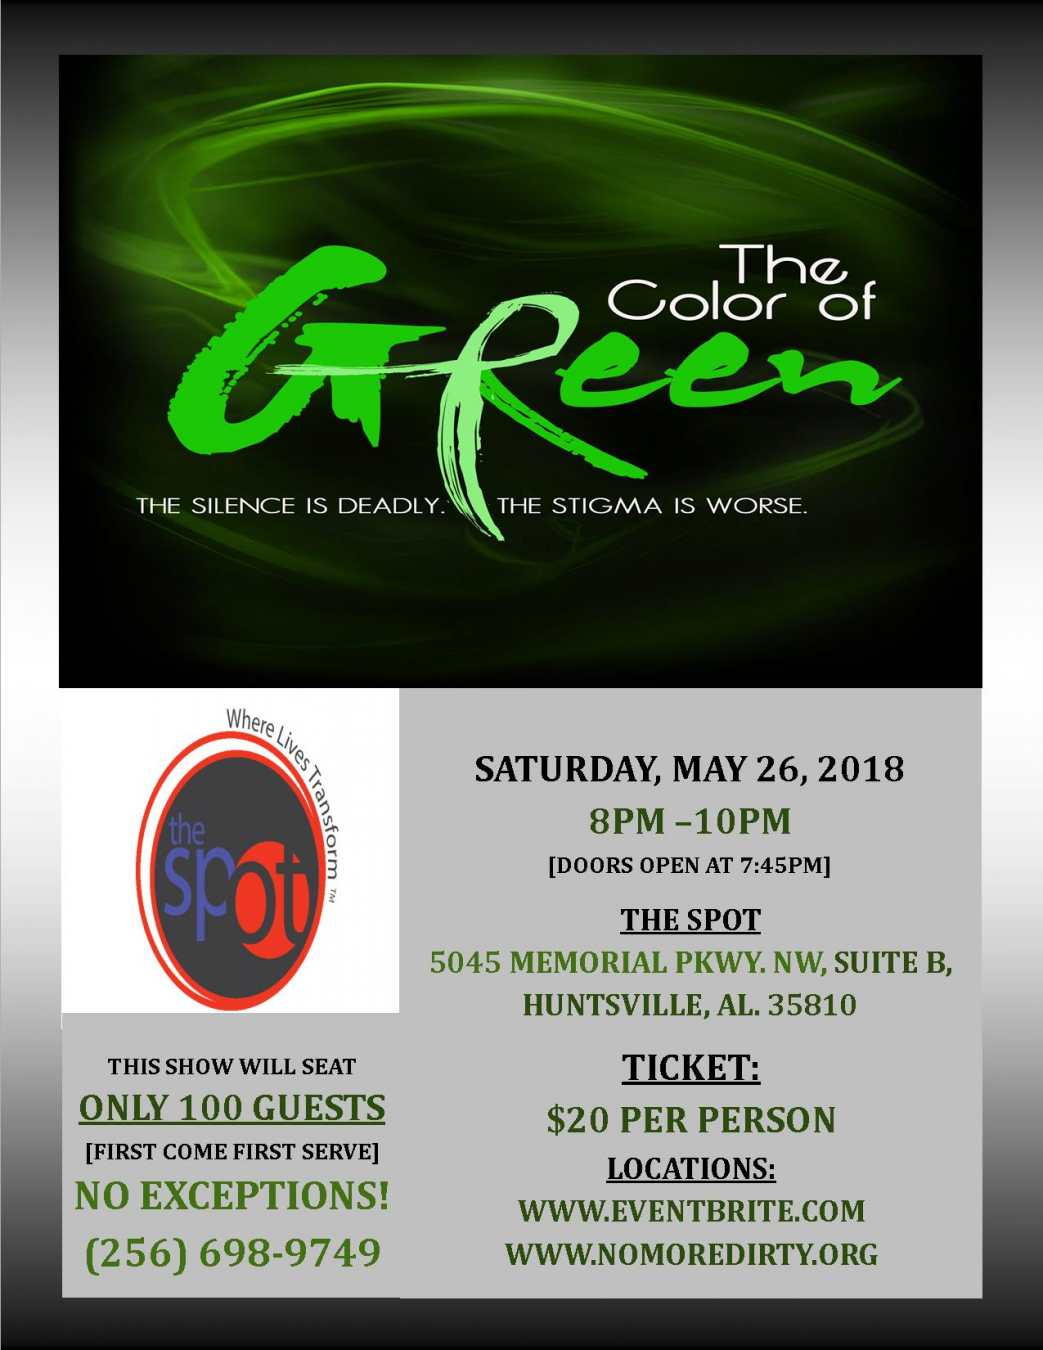 2018 THE COLOR OF GREEN FLYER - THE SPOT